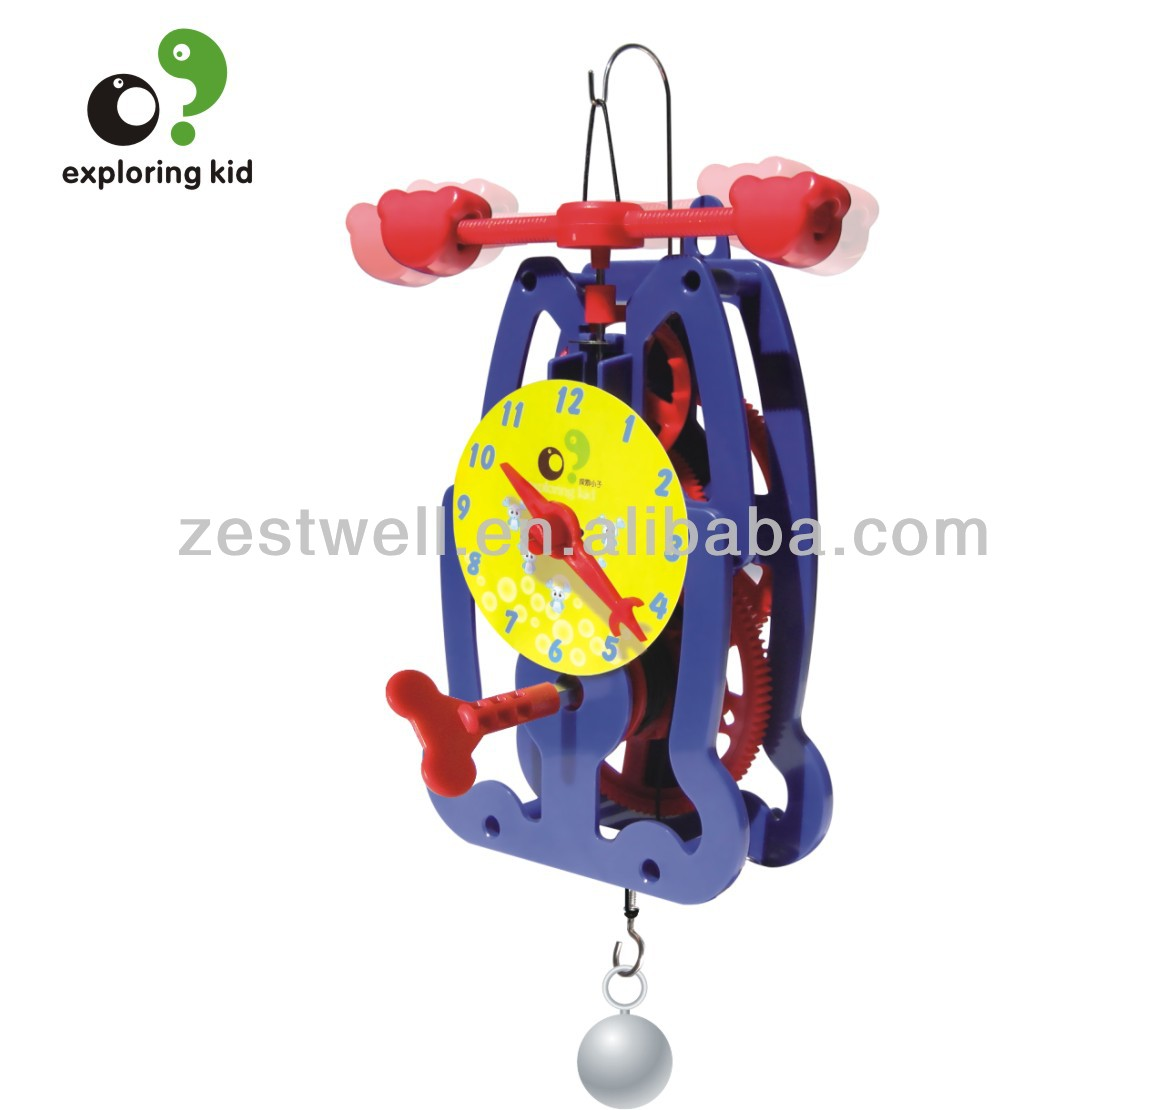 Pendulum Children Gravity Toy For 10 Year Science Experiments